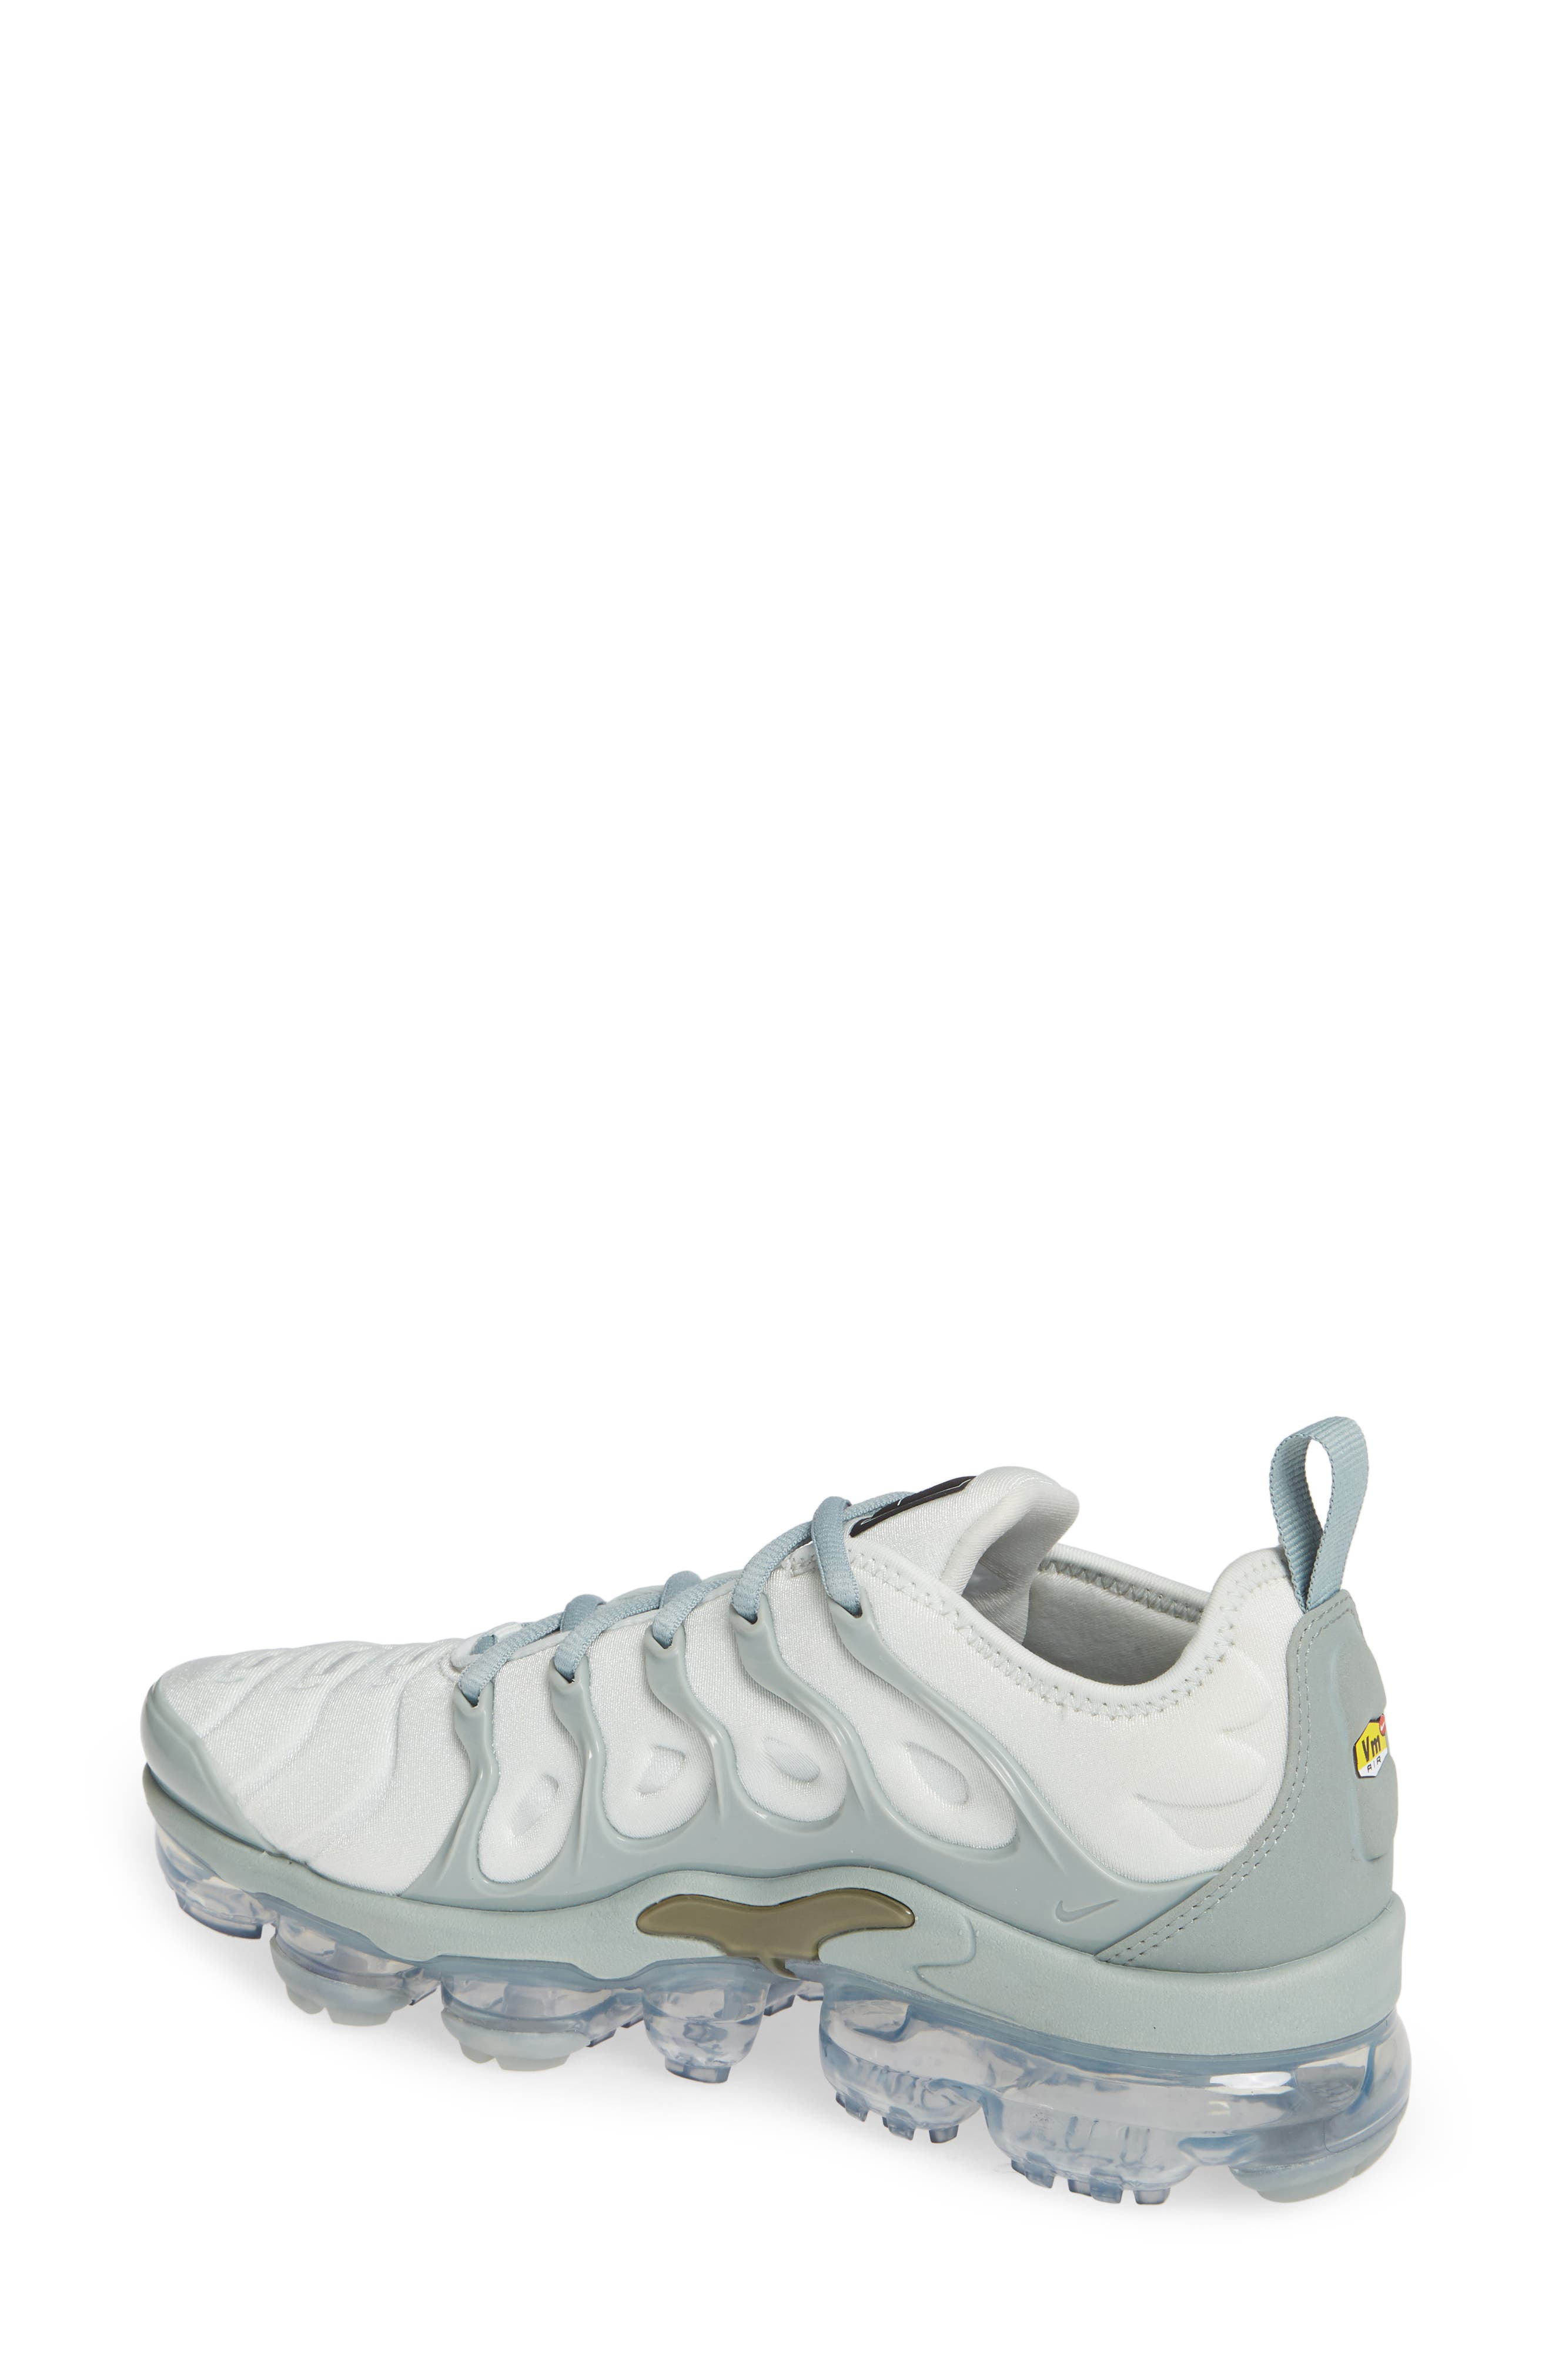 Air VaporMax Plus Sneaker,                             Alternate thumbnail 2, color,                             LIGHT SILVER/ OLIVE- GREEN